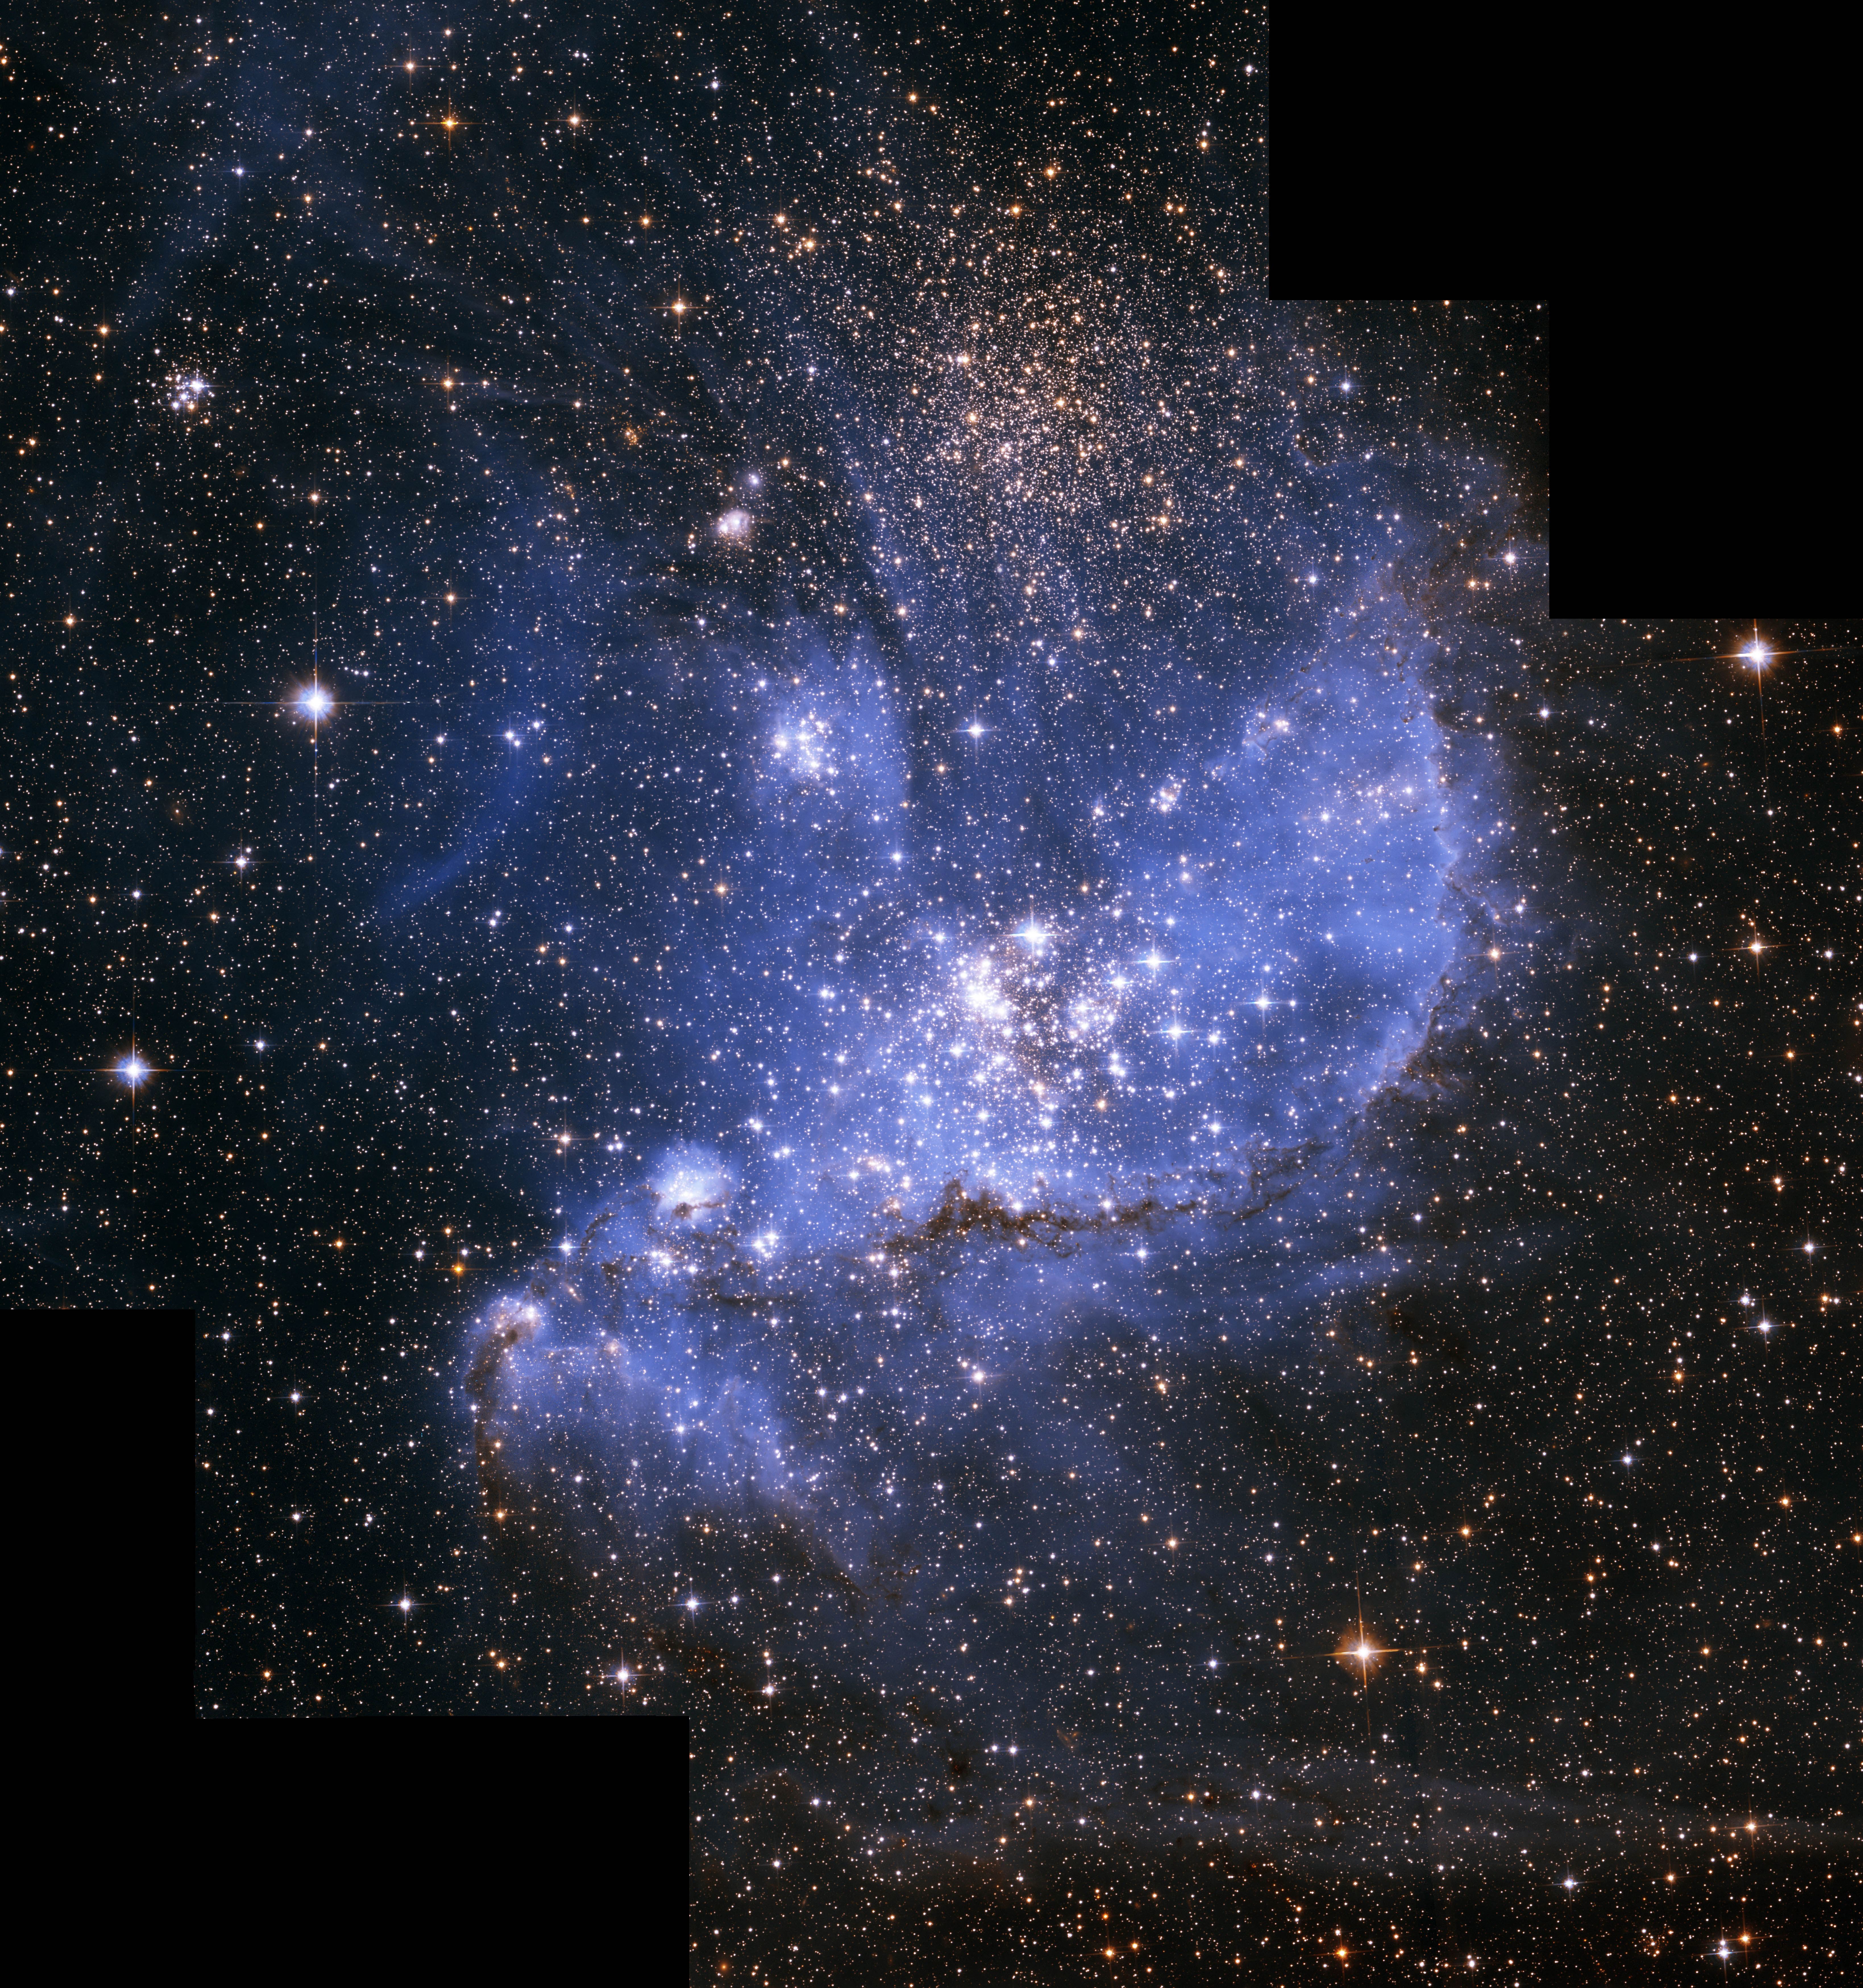 Is there enough easily assessable information on astrophotography to write a dissertation?